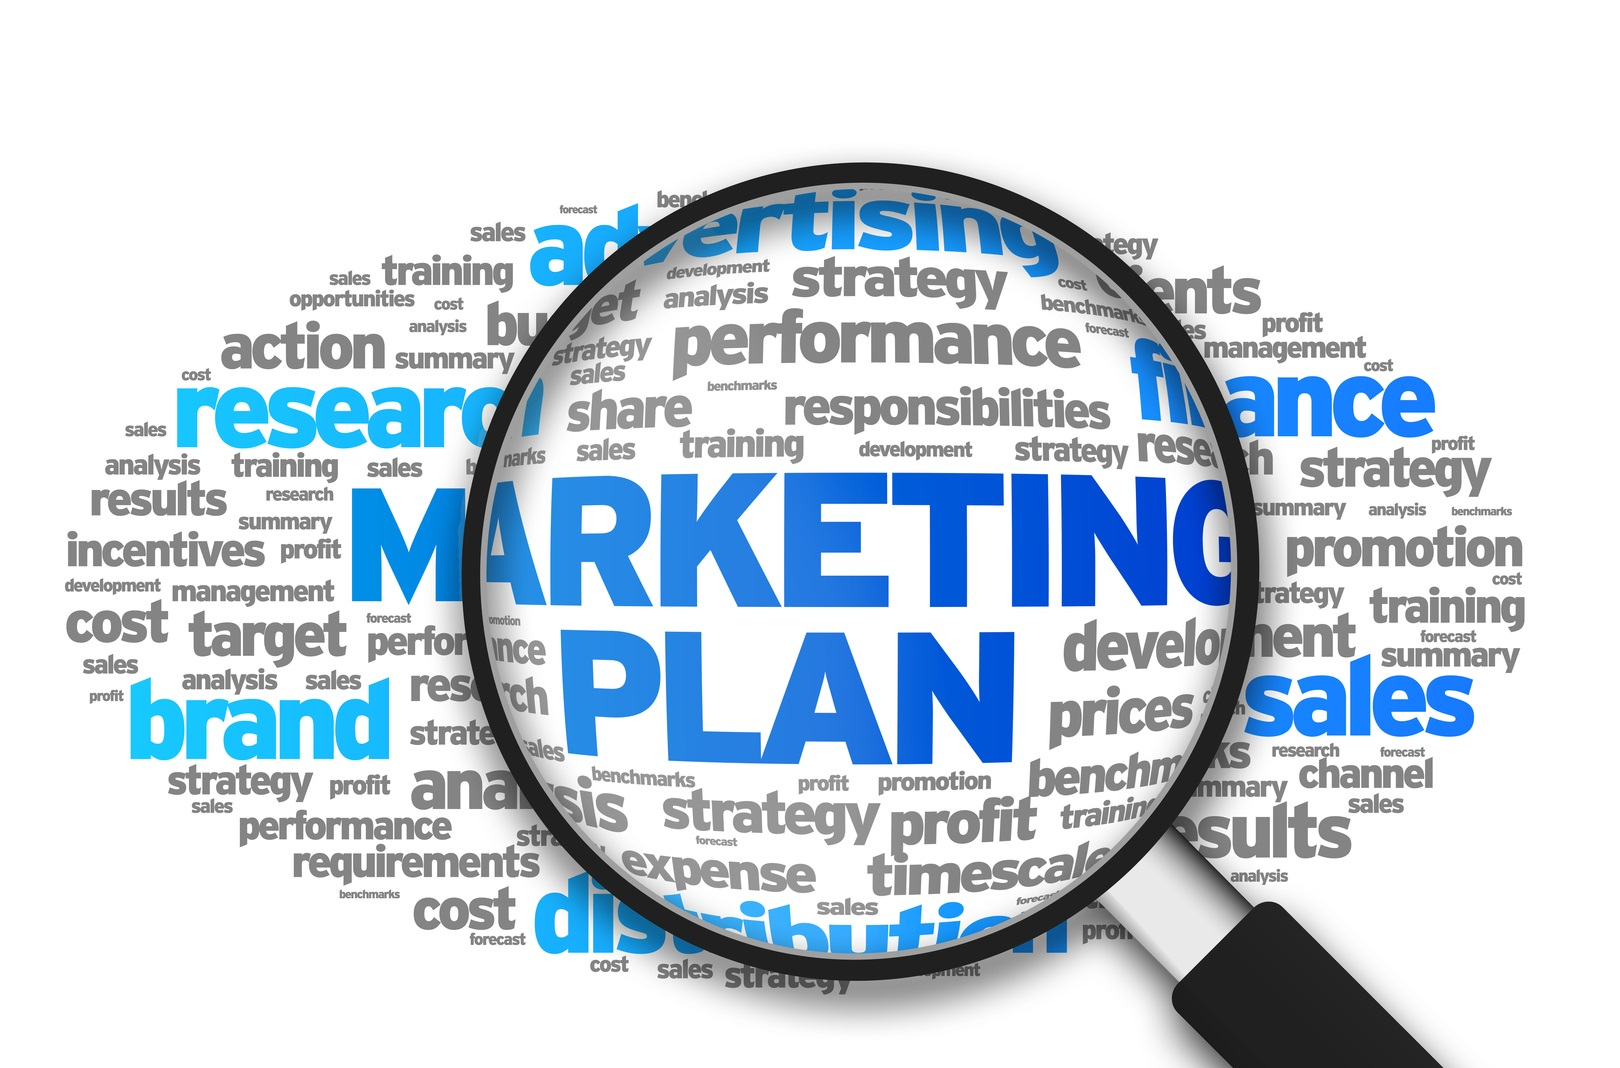 21 questions to plan your marketing year for 2017 frontburner marketing strategy austin marketing strategy dallas